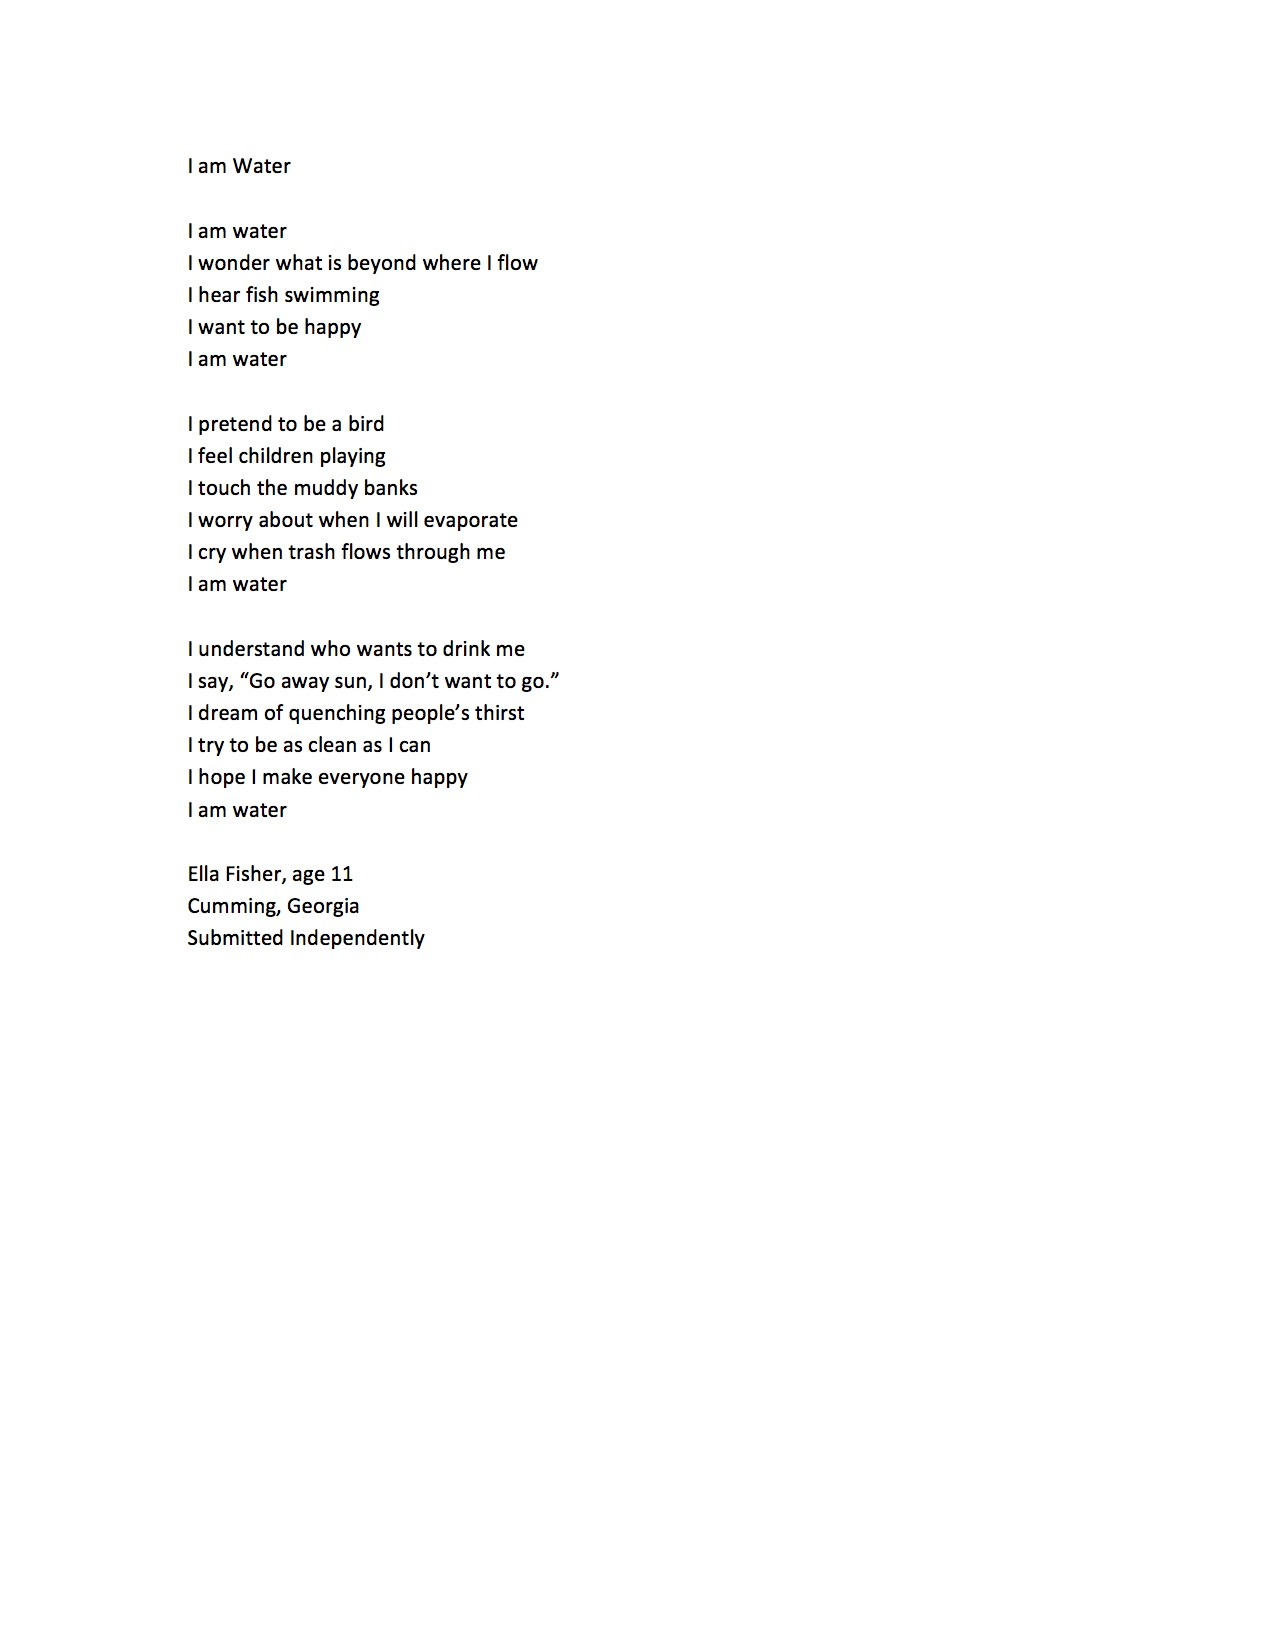 i am joaquin poem essay I am joaquin is an amazingly profound poem/ book in terms of personhood, identity, narrative psychology, and its literal affect on history (hugely influential in the chicano movement, and mexican-american civil rights), this poem is unrivaled.